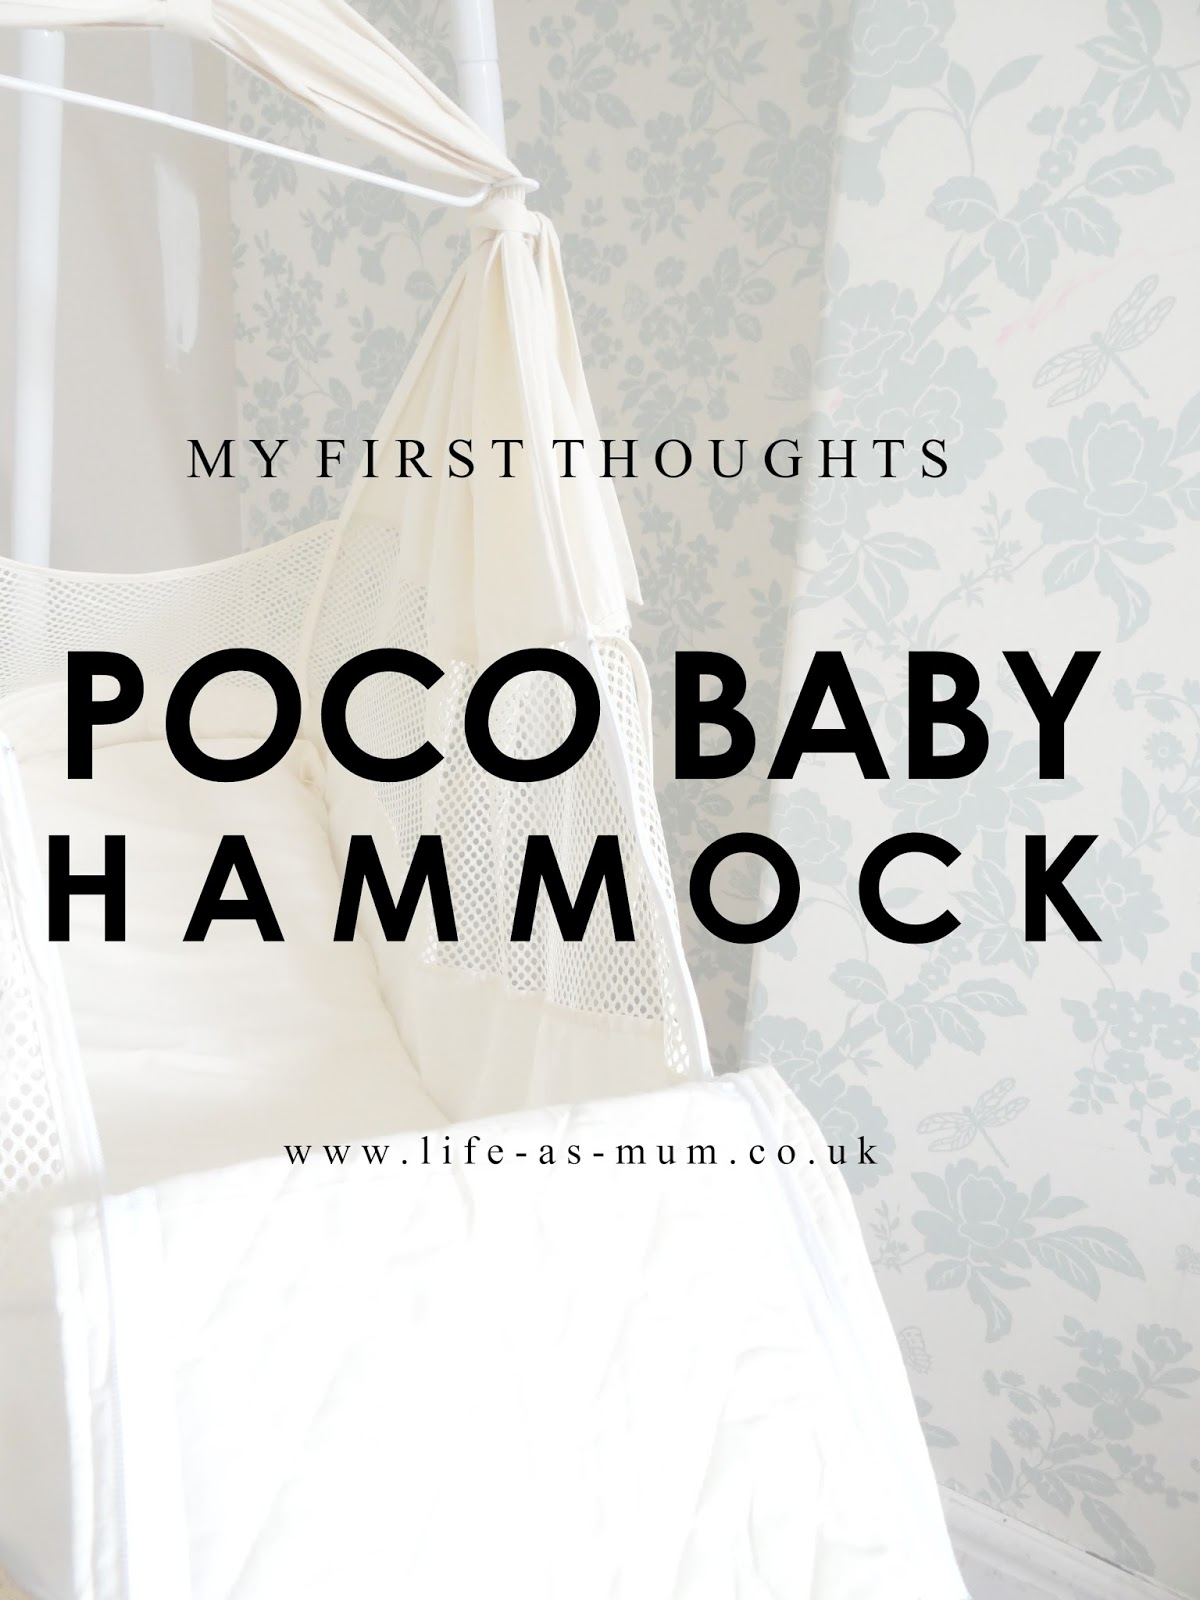 when i found out i was pregnant for the third time back in october i started looking for baby items  i had a shock at how many new things are out now     poco baby hammock   my first thoughts   life as mum   uk family      rh   life as mum co uk